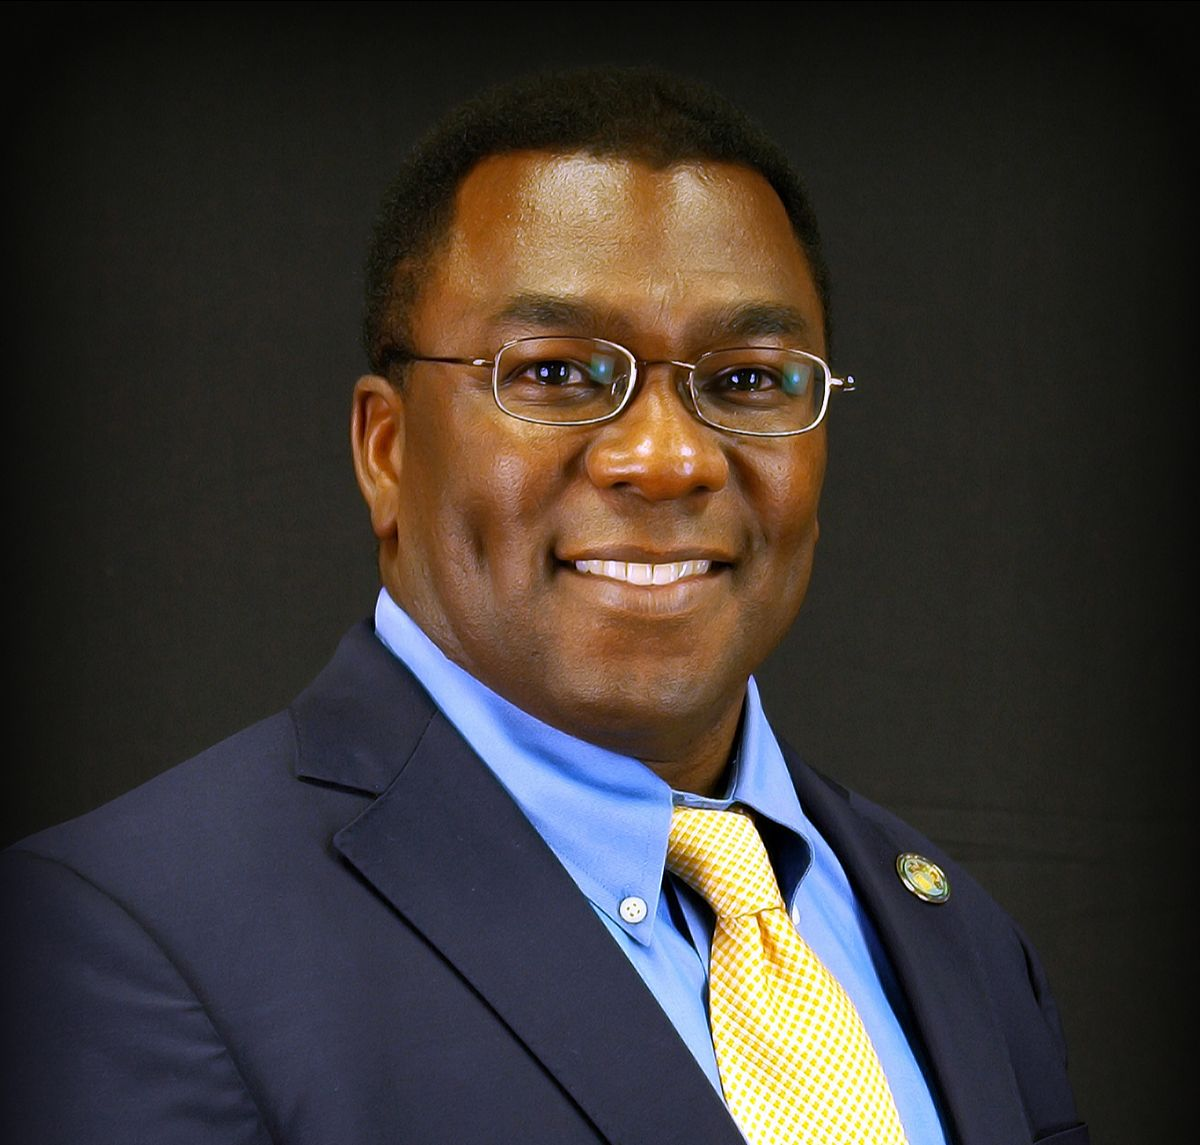 Assistant City Manager Mike Etienne